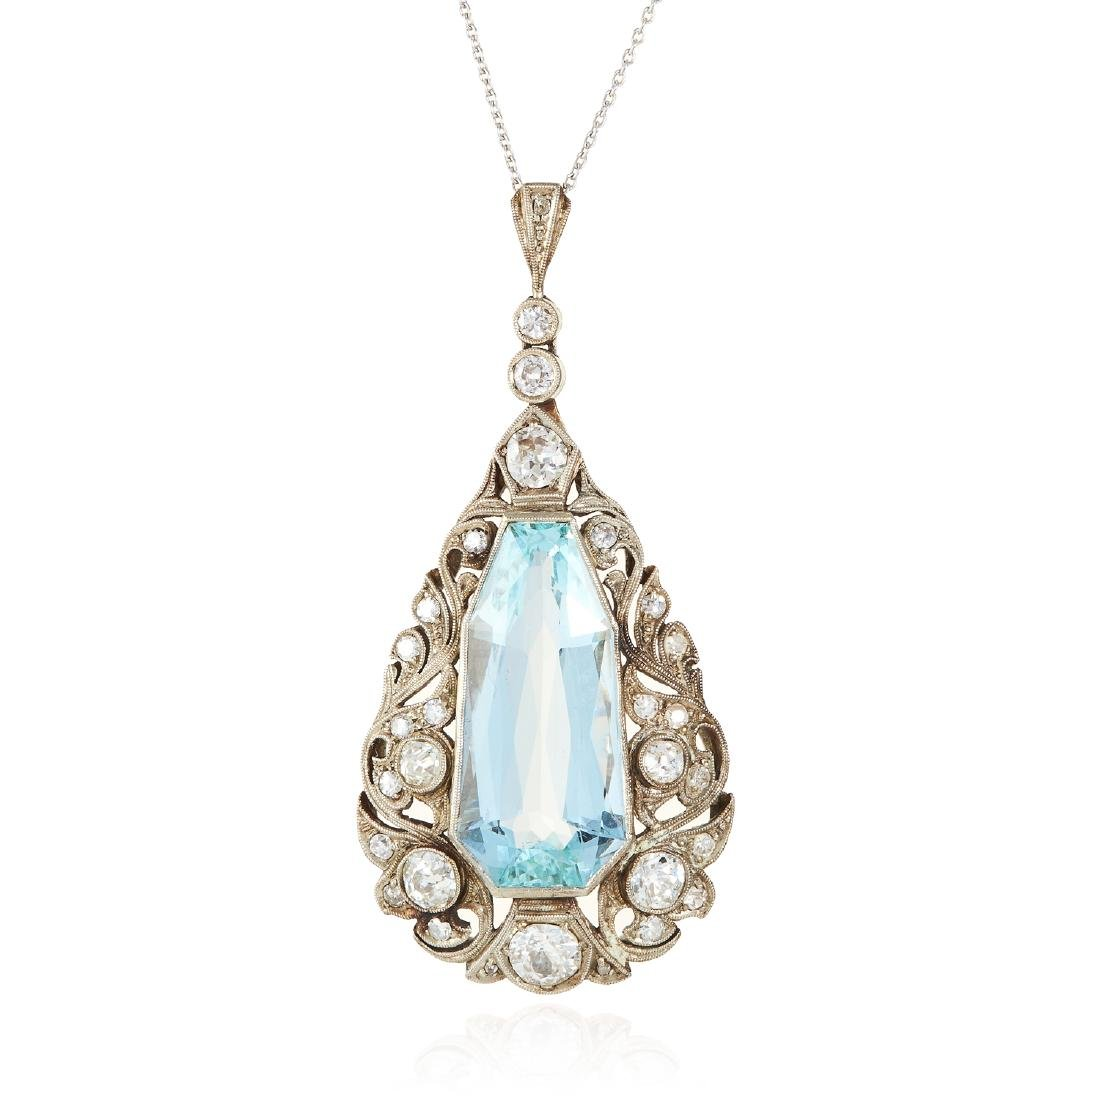 AN ANTIQUE AQUAMARINE AND DIAMOND PENDANT in white gold